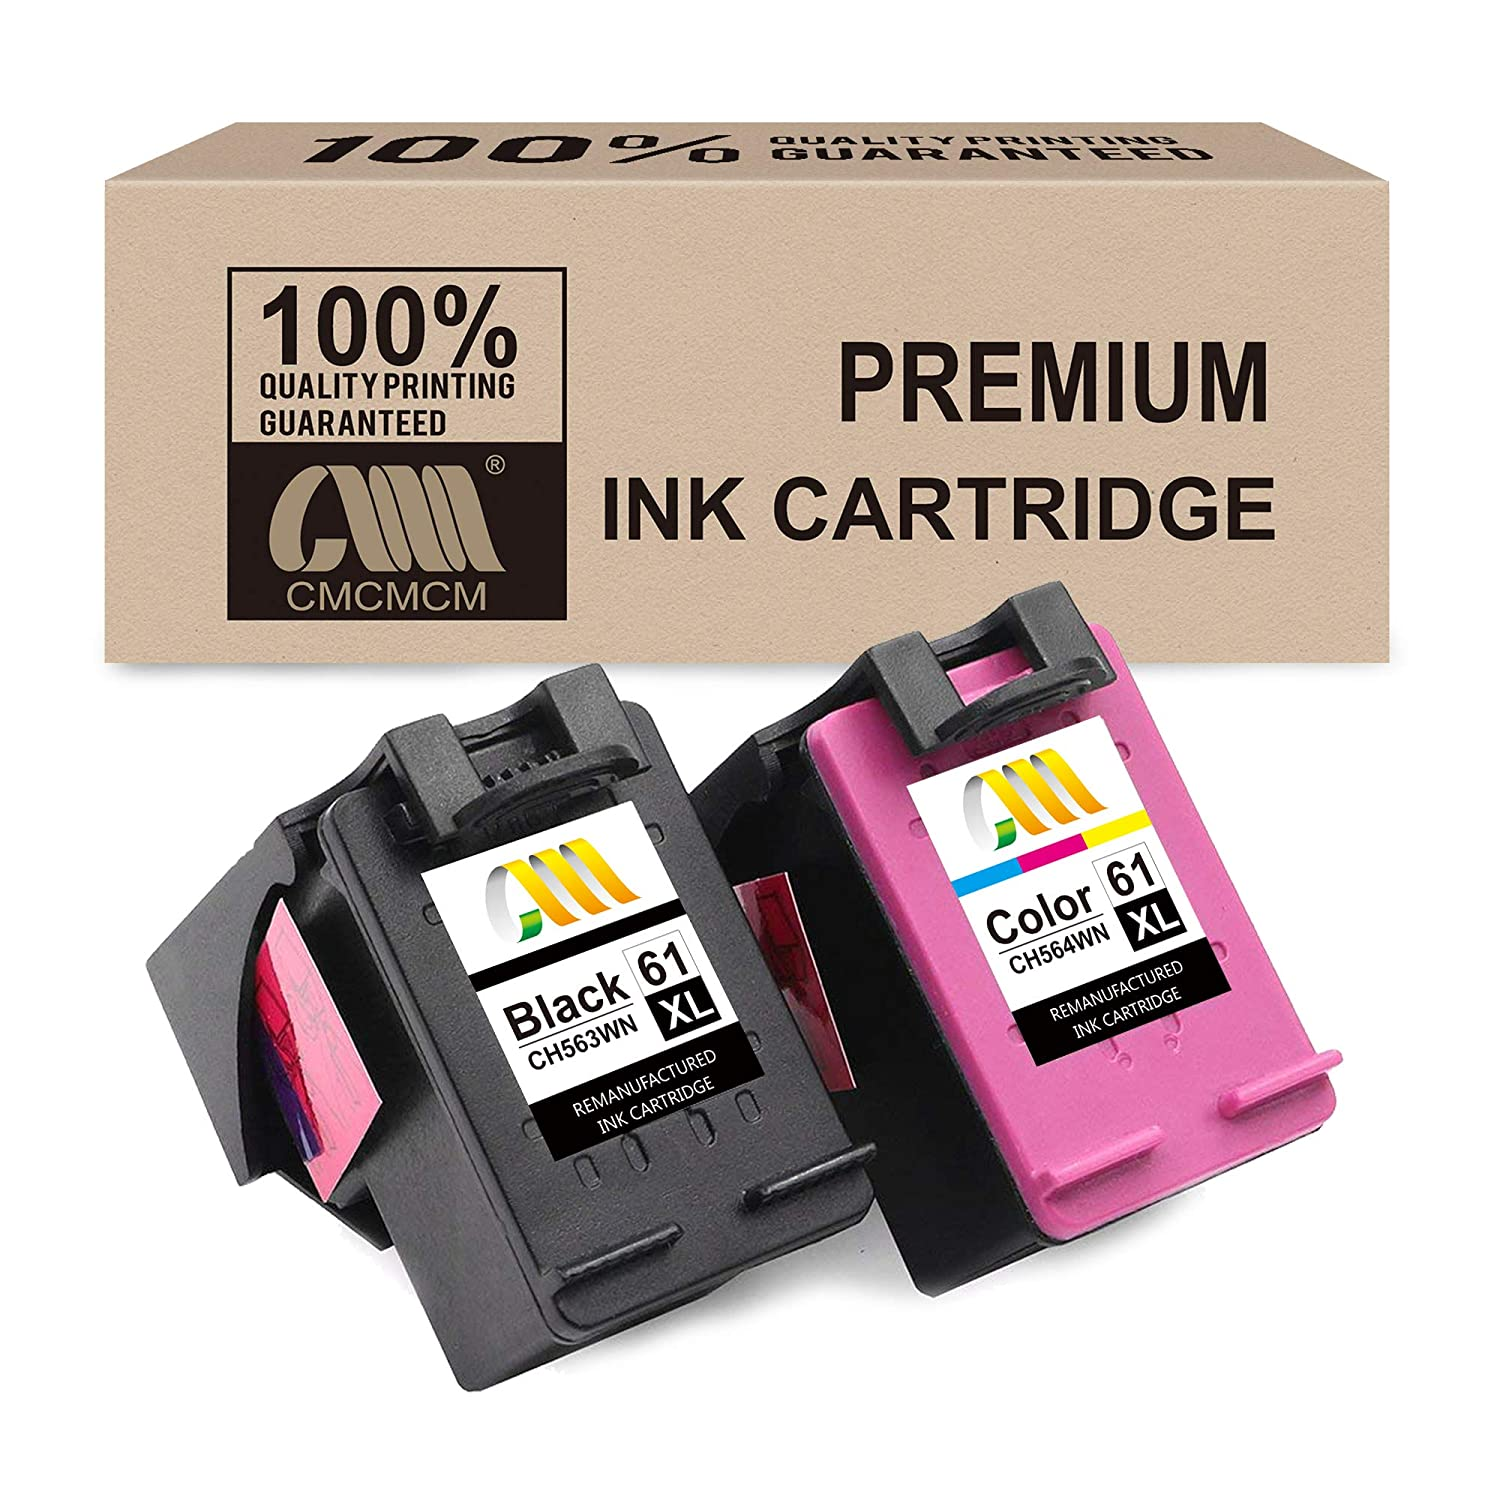 CMCMCM Remanufactured Ink Cartridge Replacement for HP 61 XL 61XL Combo Pack for OfficeJet 4630 4635 Envy 5530 4500 4502 DeskJet 2540 3050 3510 3512 1000 1512 1513 2050 2542 3000 Printer ( Ink Level Display)